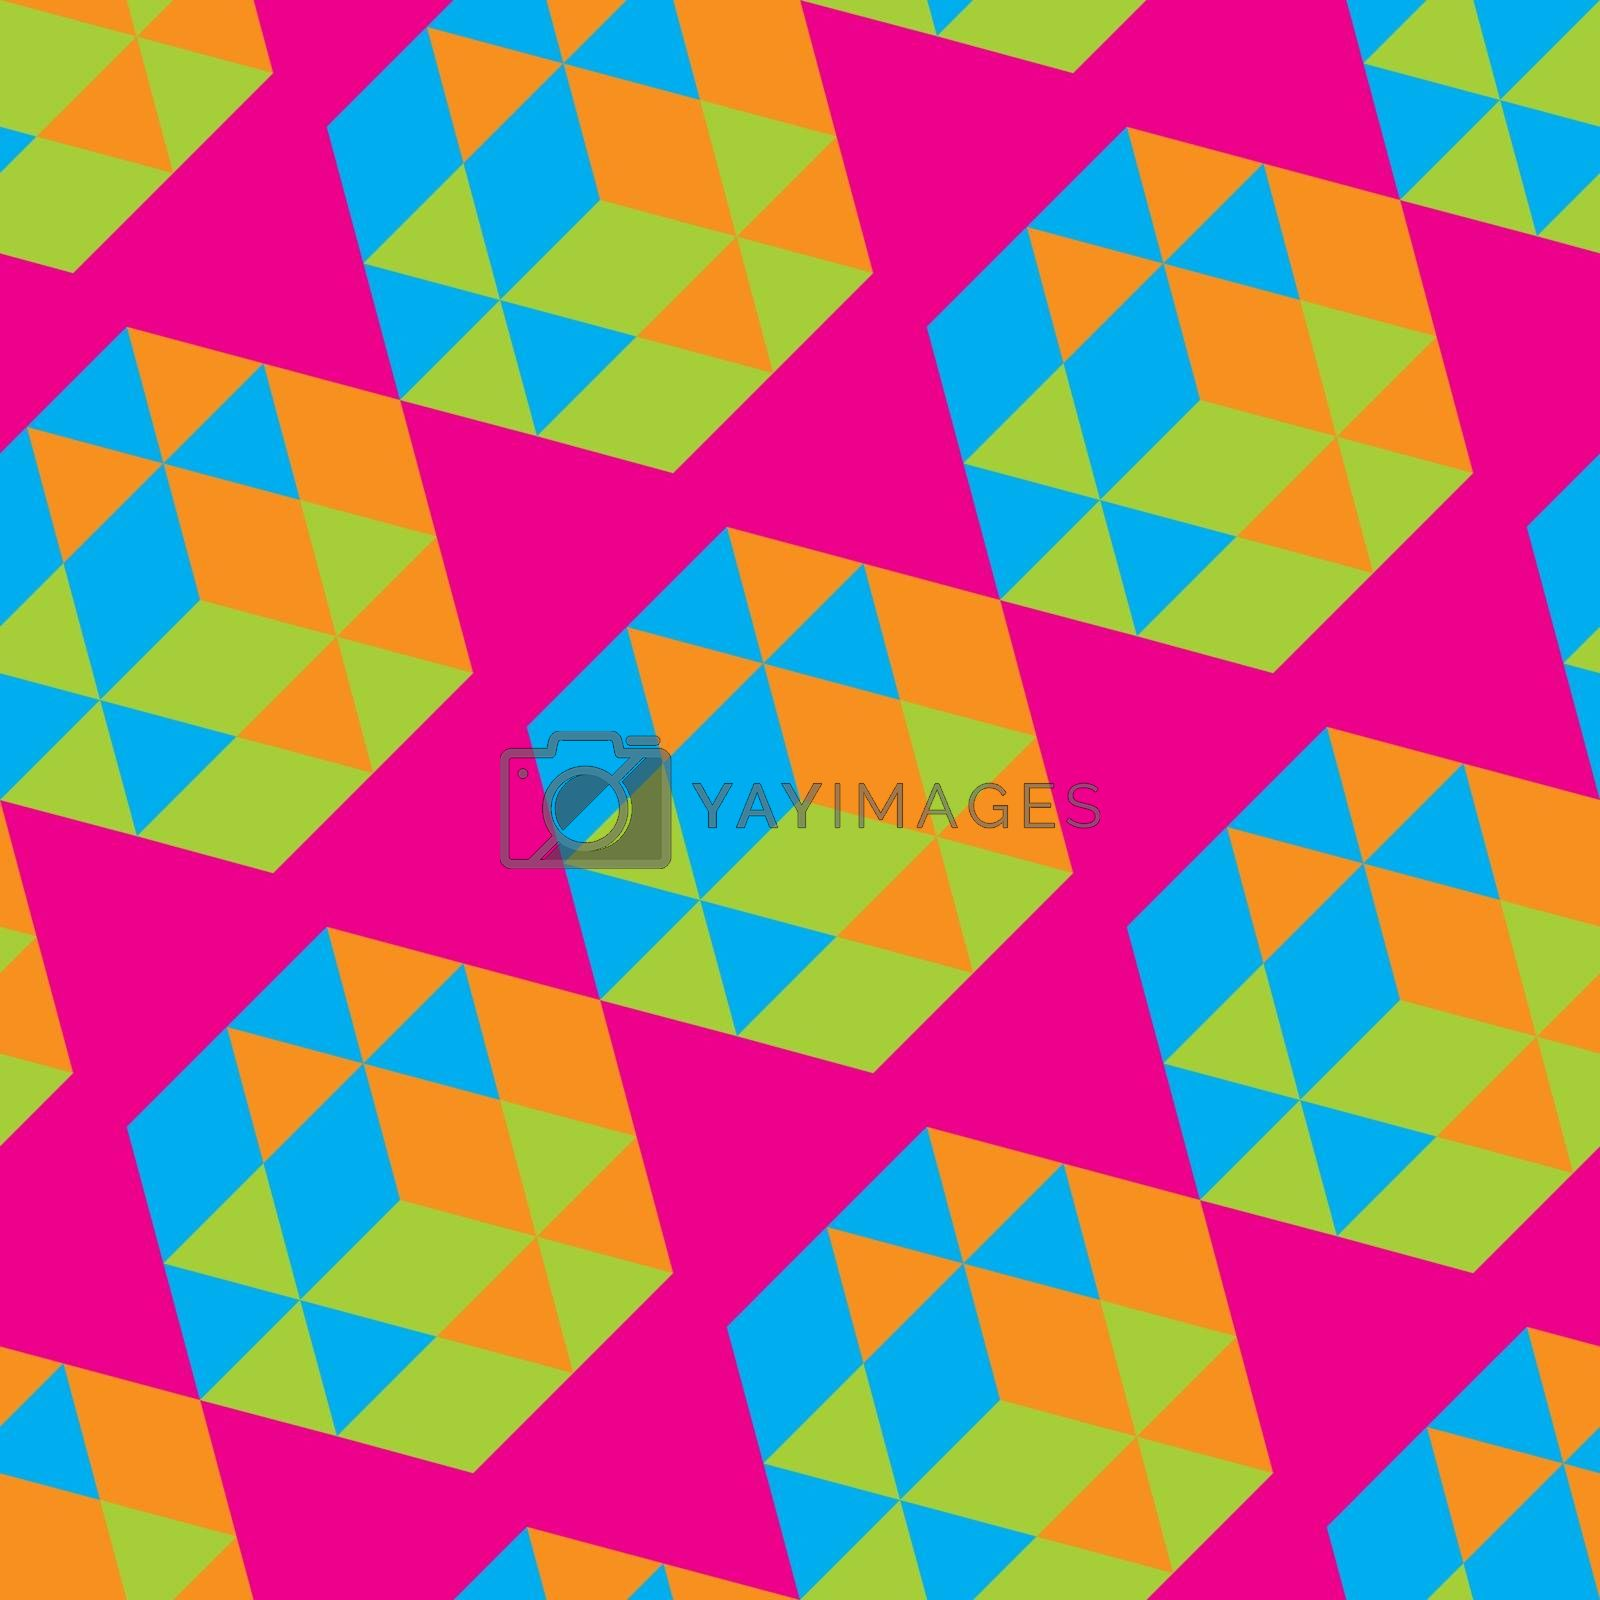 Abstract Geometrical 3d Background. Seamless Pattern.  Mosaic. Vector Illustration. Can Be Used For Wallpaper, Web Page Background.